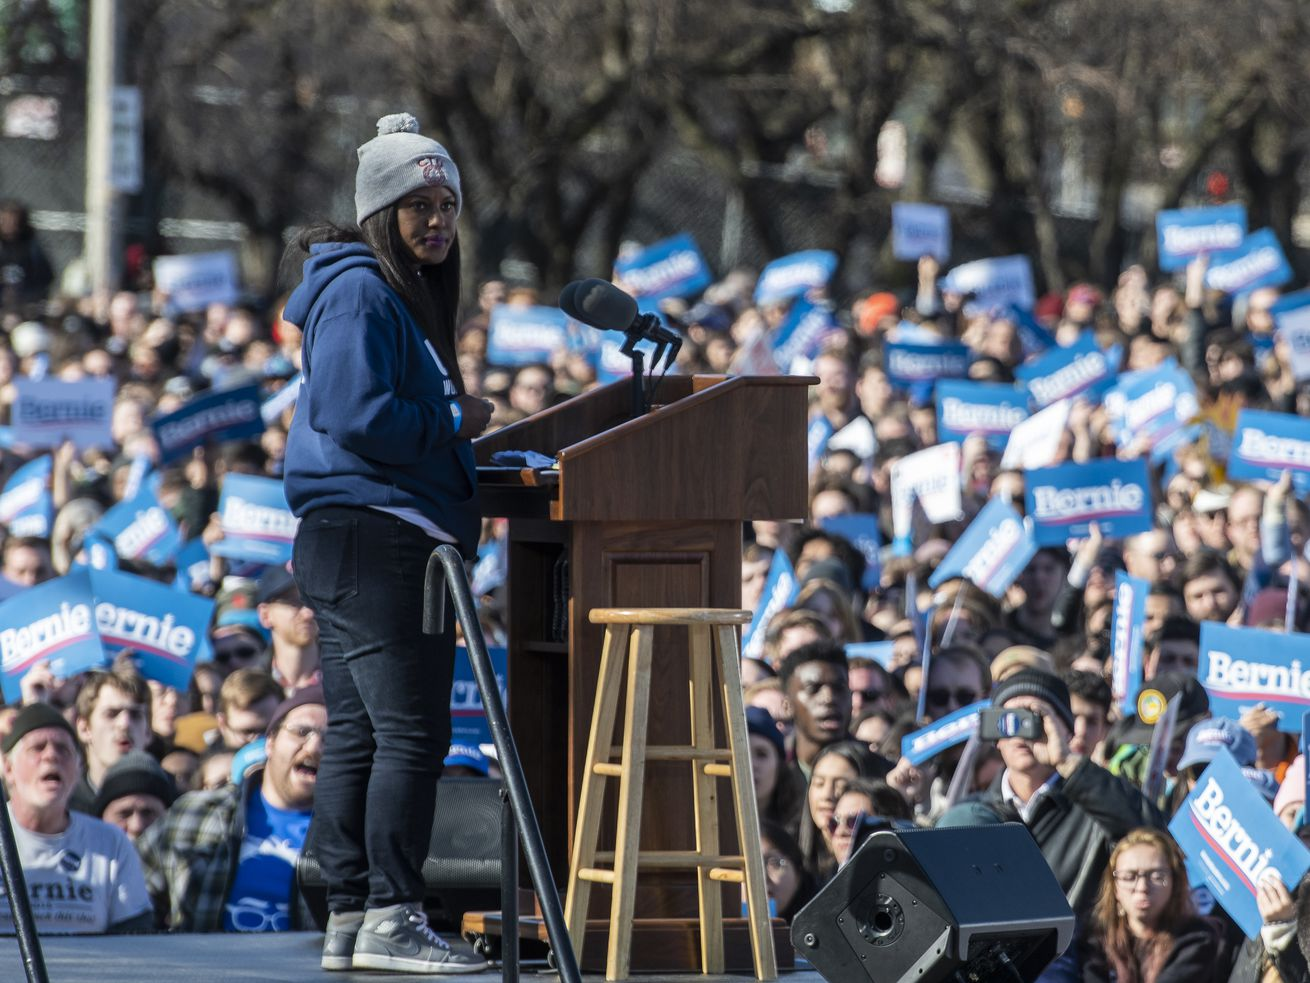 Chicago 'lefties' still feelin' the Bern, but not looking to burn Biden — see Dem nominee as stepping-stone to progress